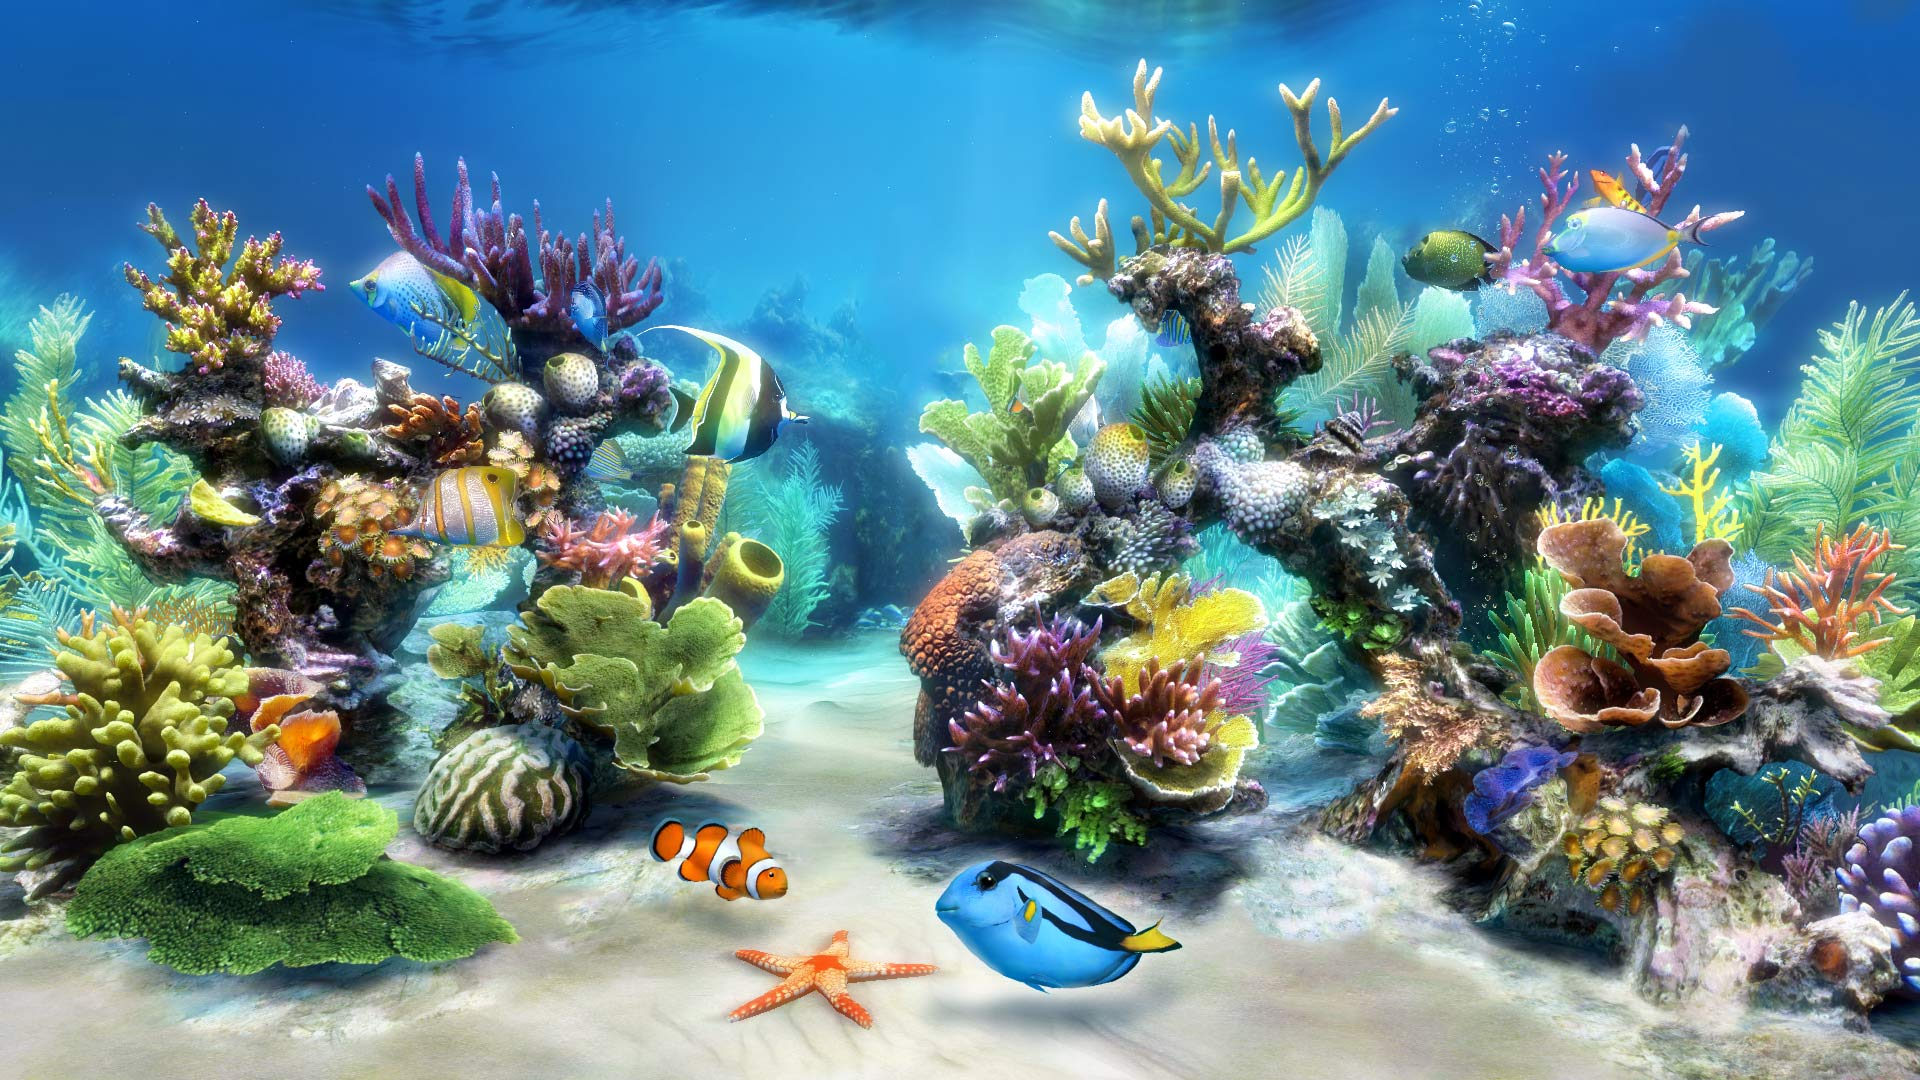 Sim Aquarium   Virtual Aquarium, Screensaver And Live Wallpaper